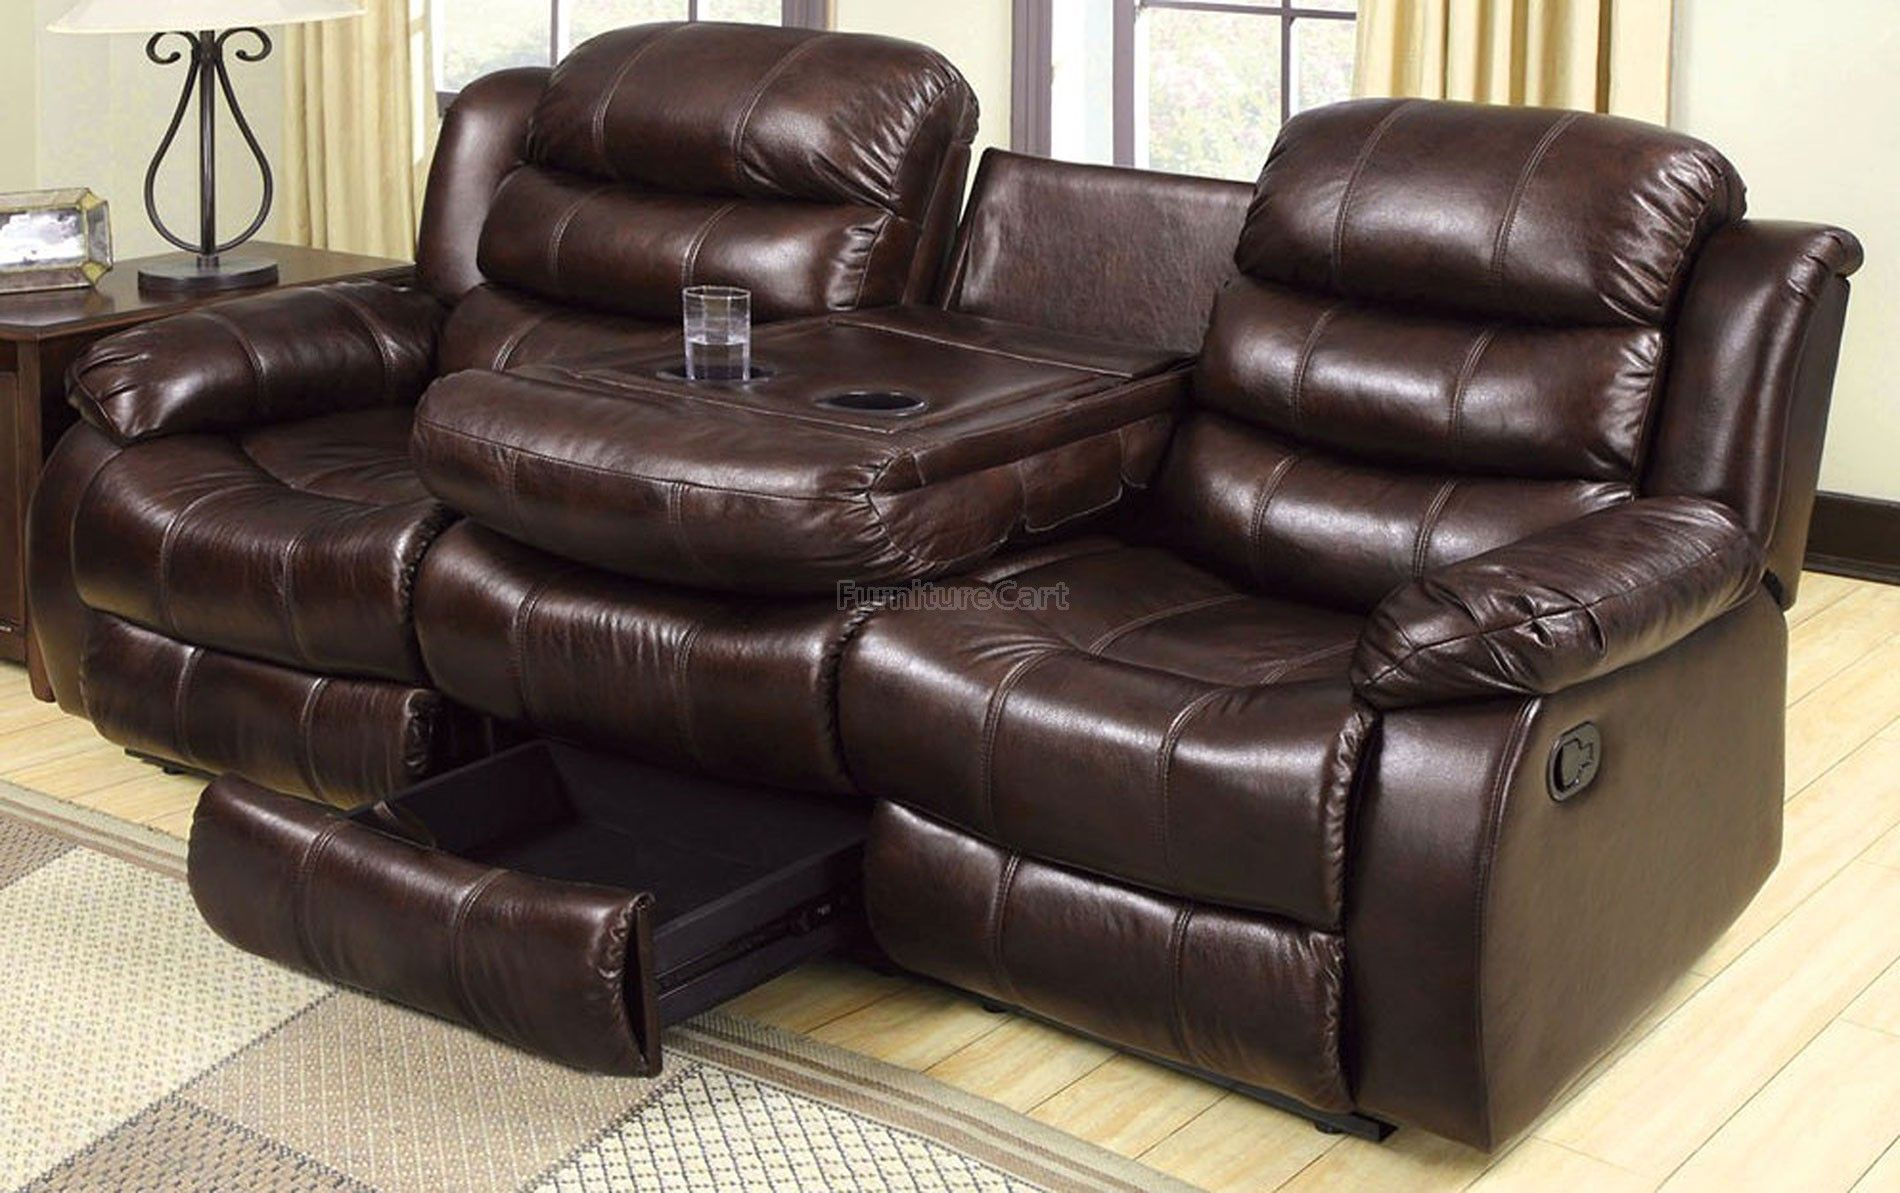 Pin By Rachel Ellinger On Couch Reclining Sofa Leather Reclining Sofa Recliner